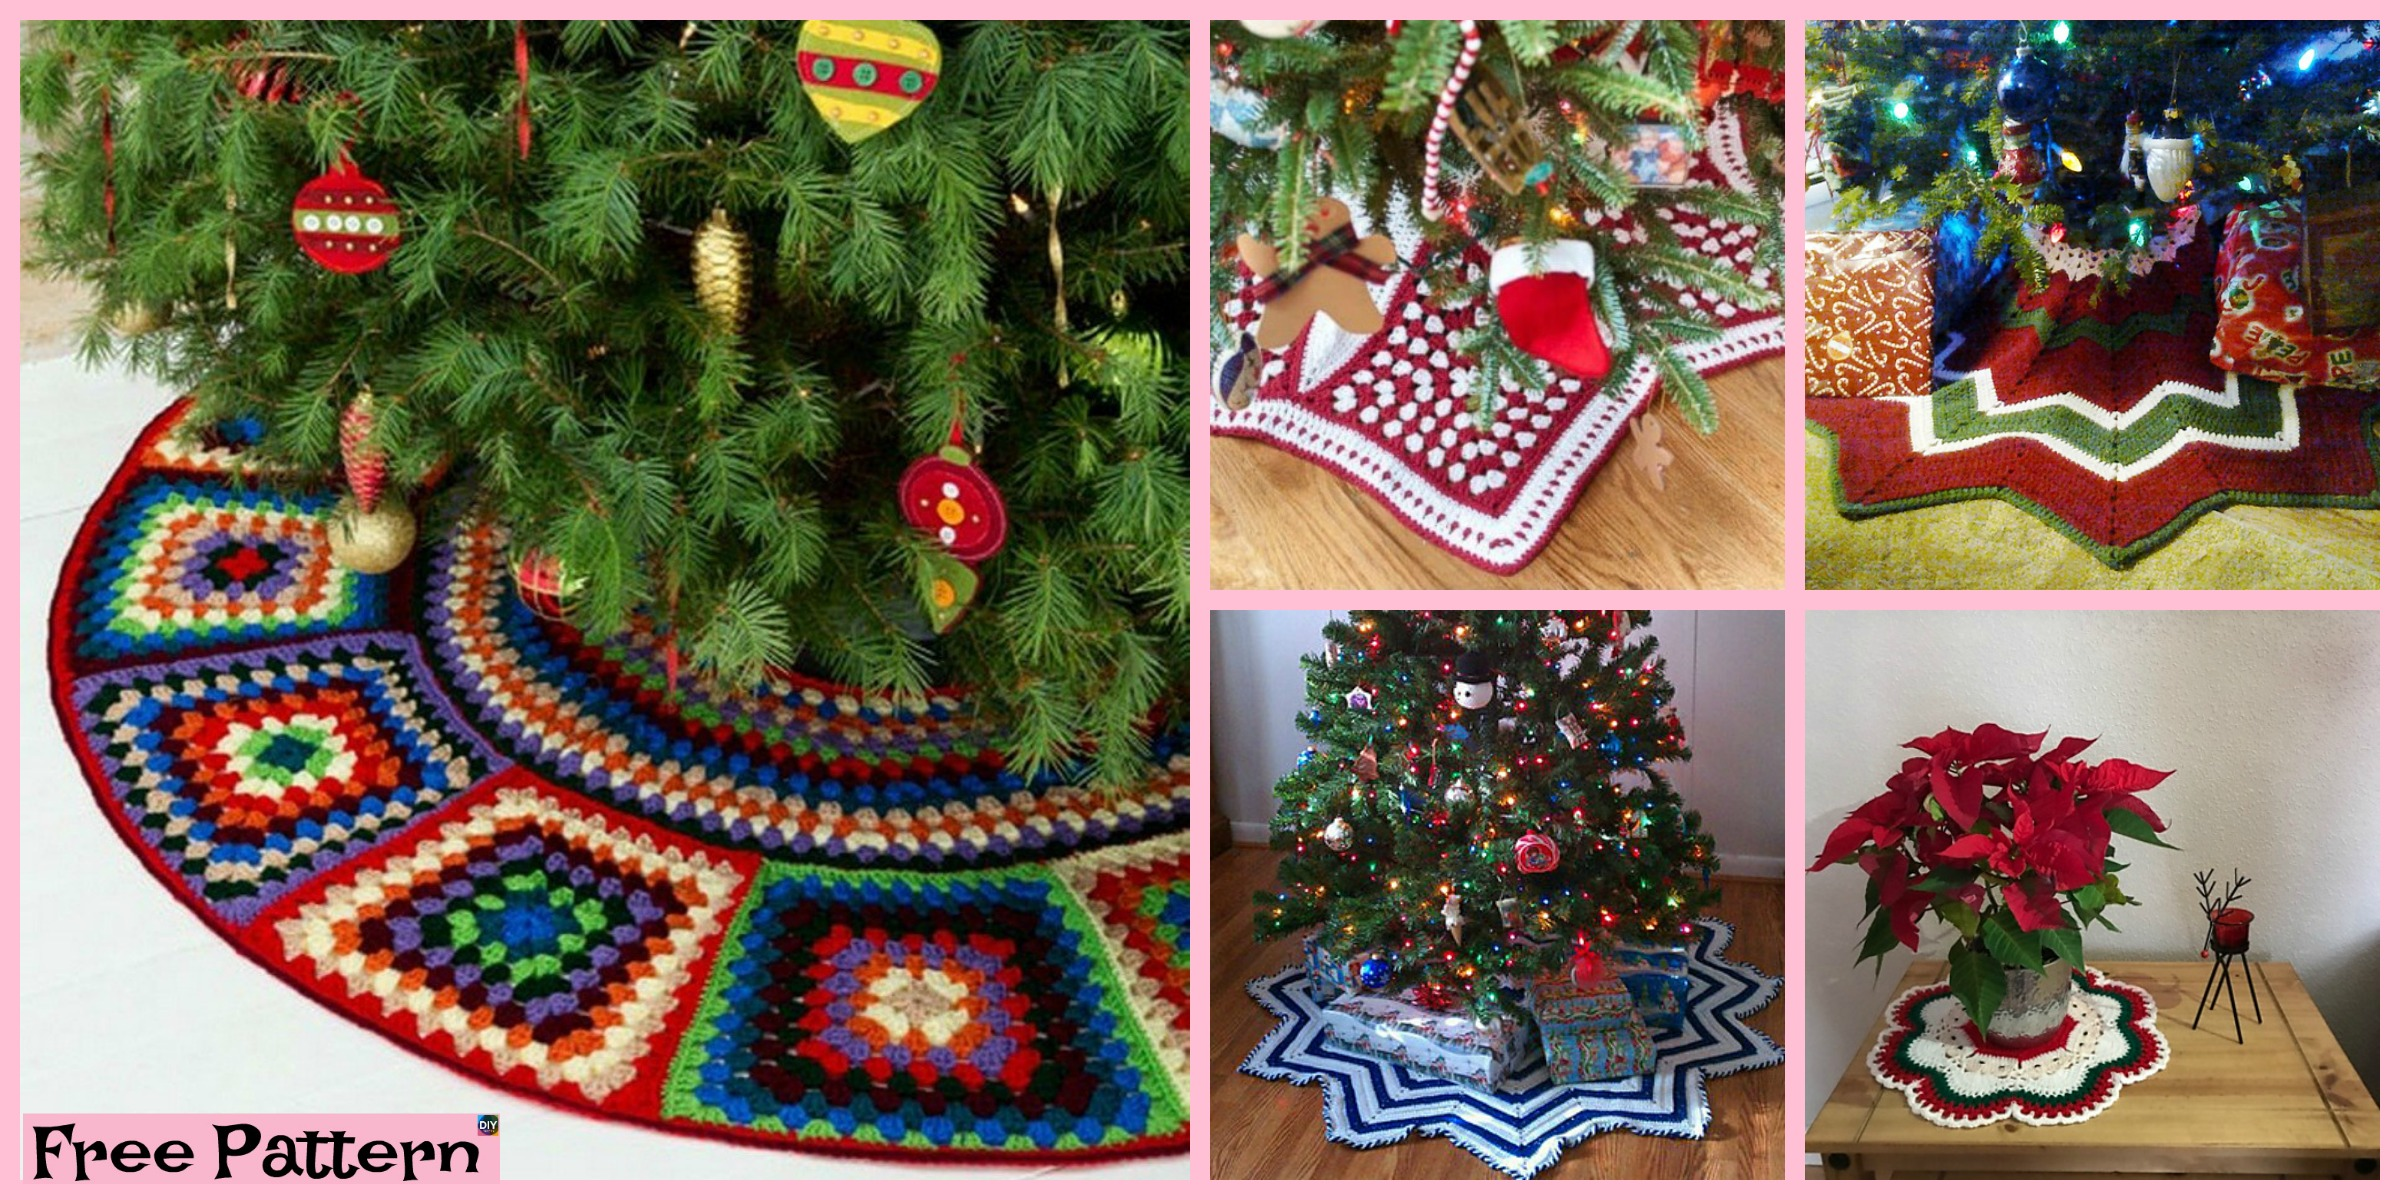 10 Crochet Christmas Tree Skirts – Free Patterns